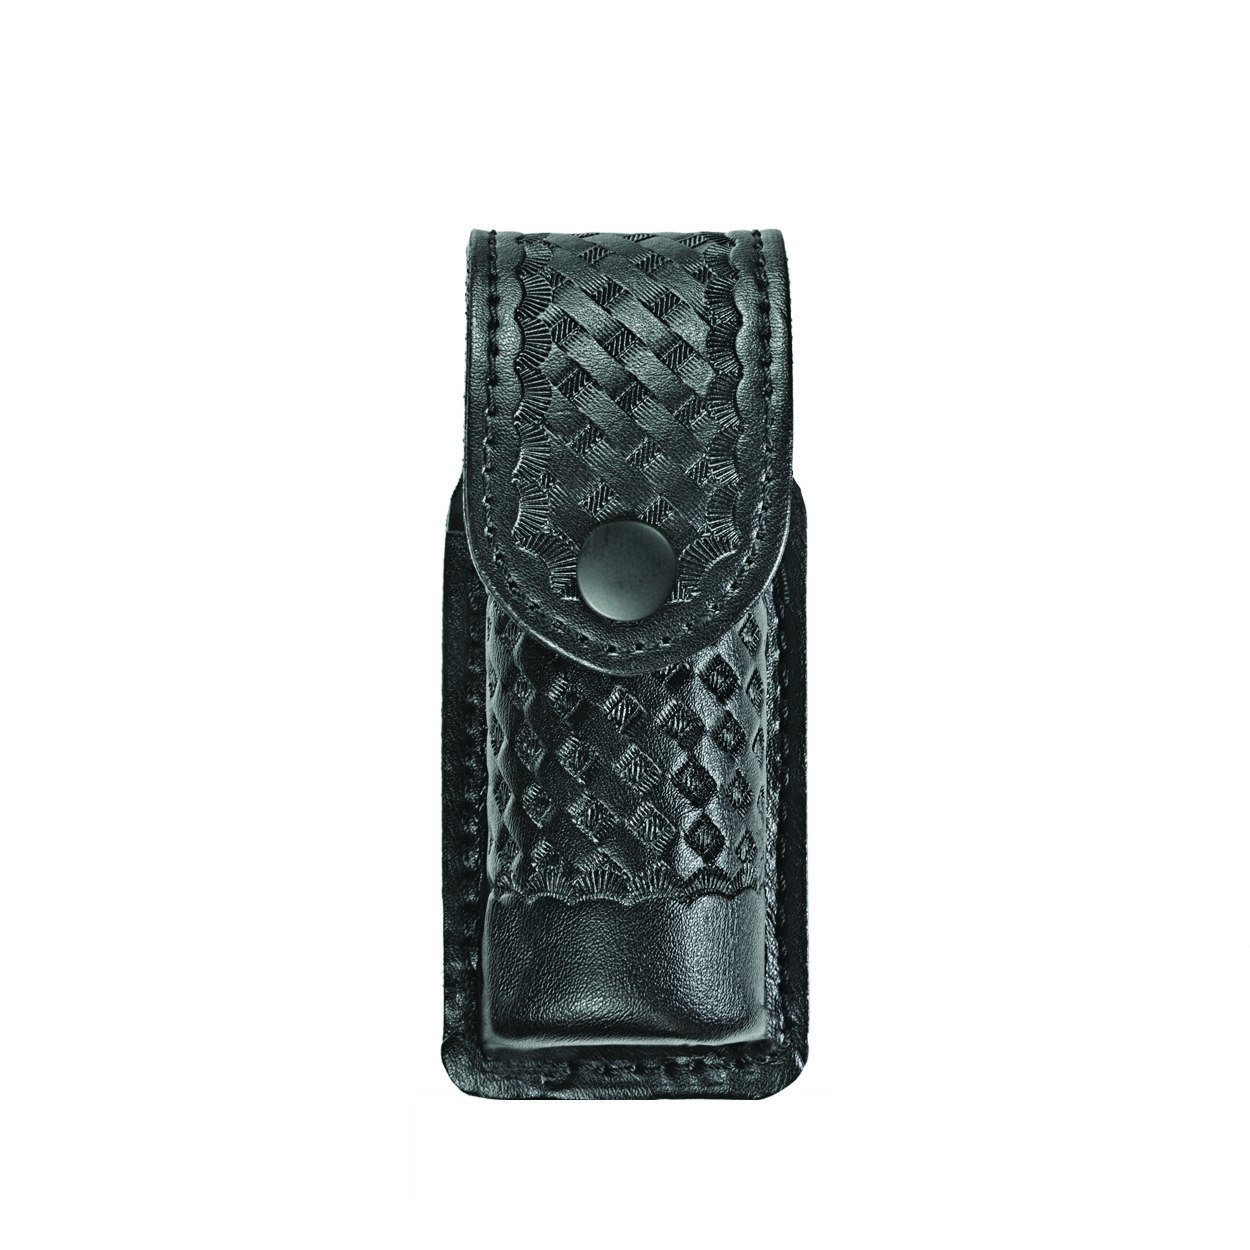 O.C. (Pepper) Spray Case, Small, MK3 (MK2,6), AirTek, BW, Black Snap-